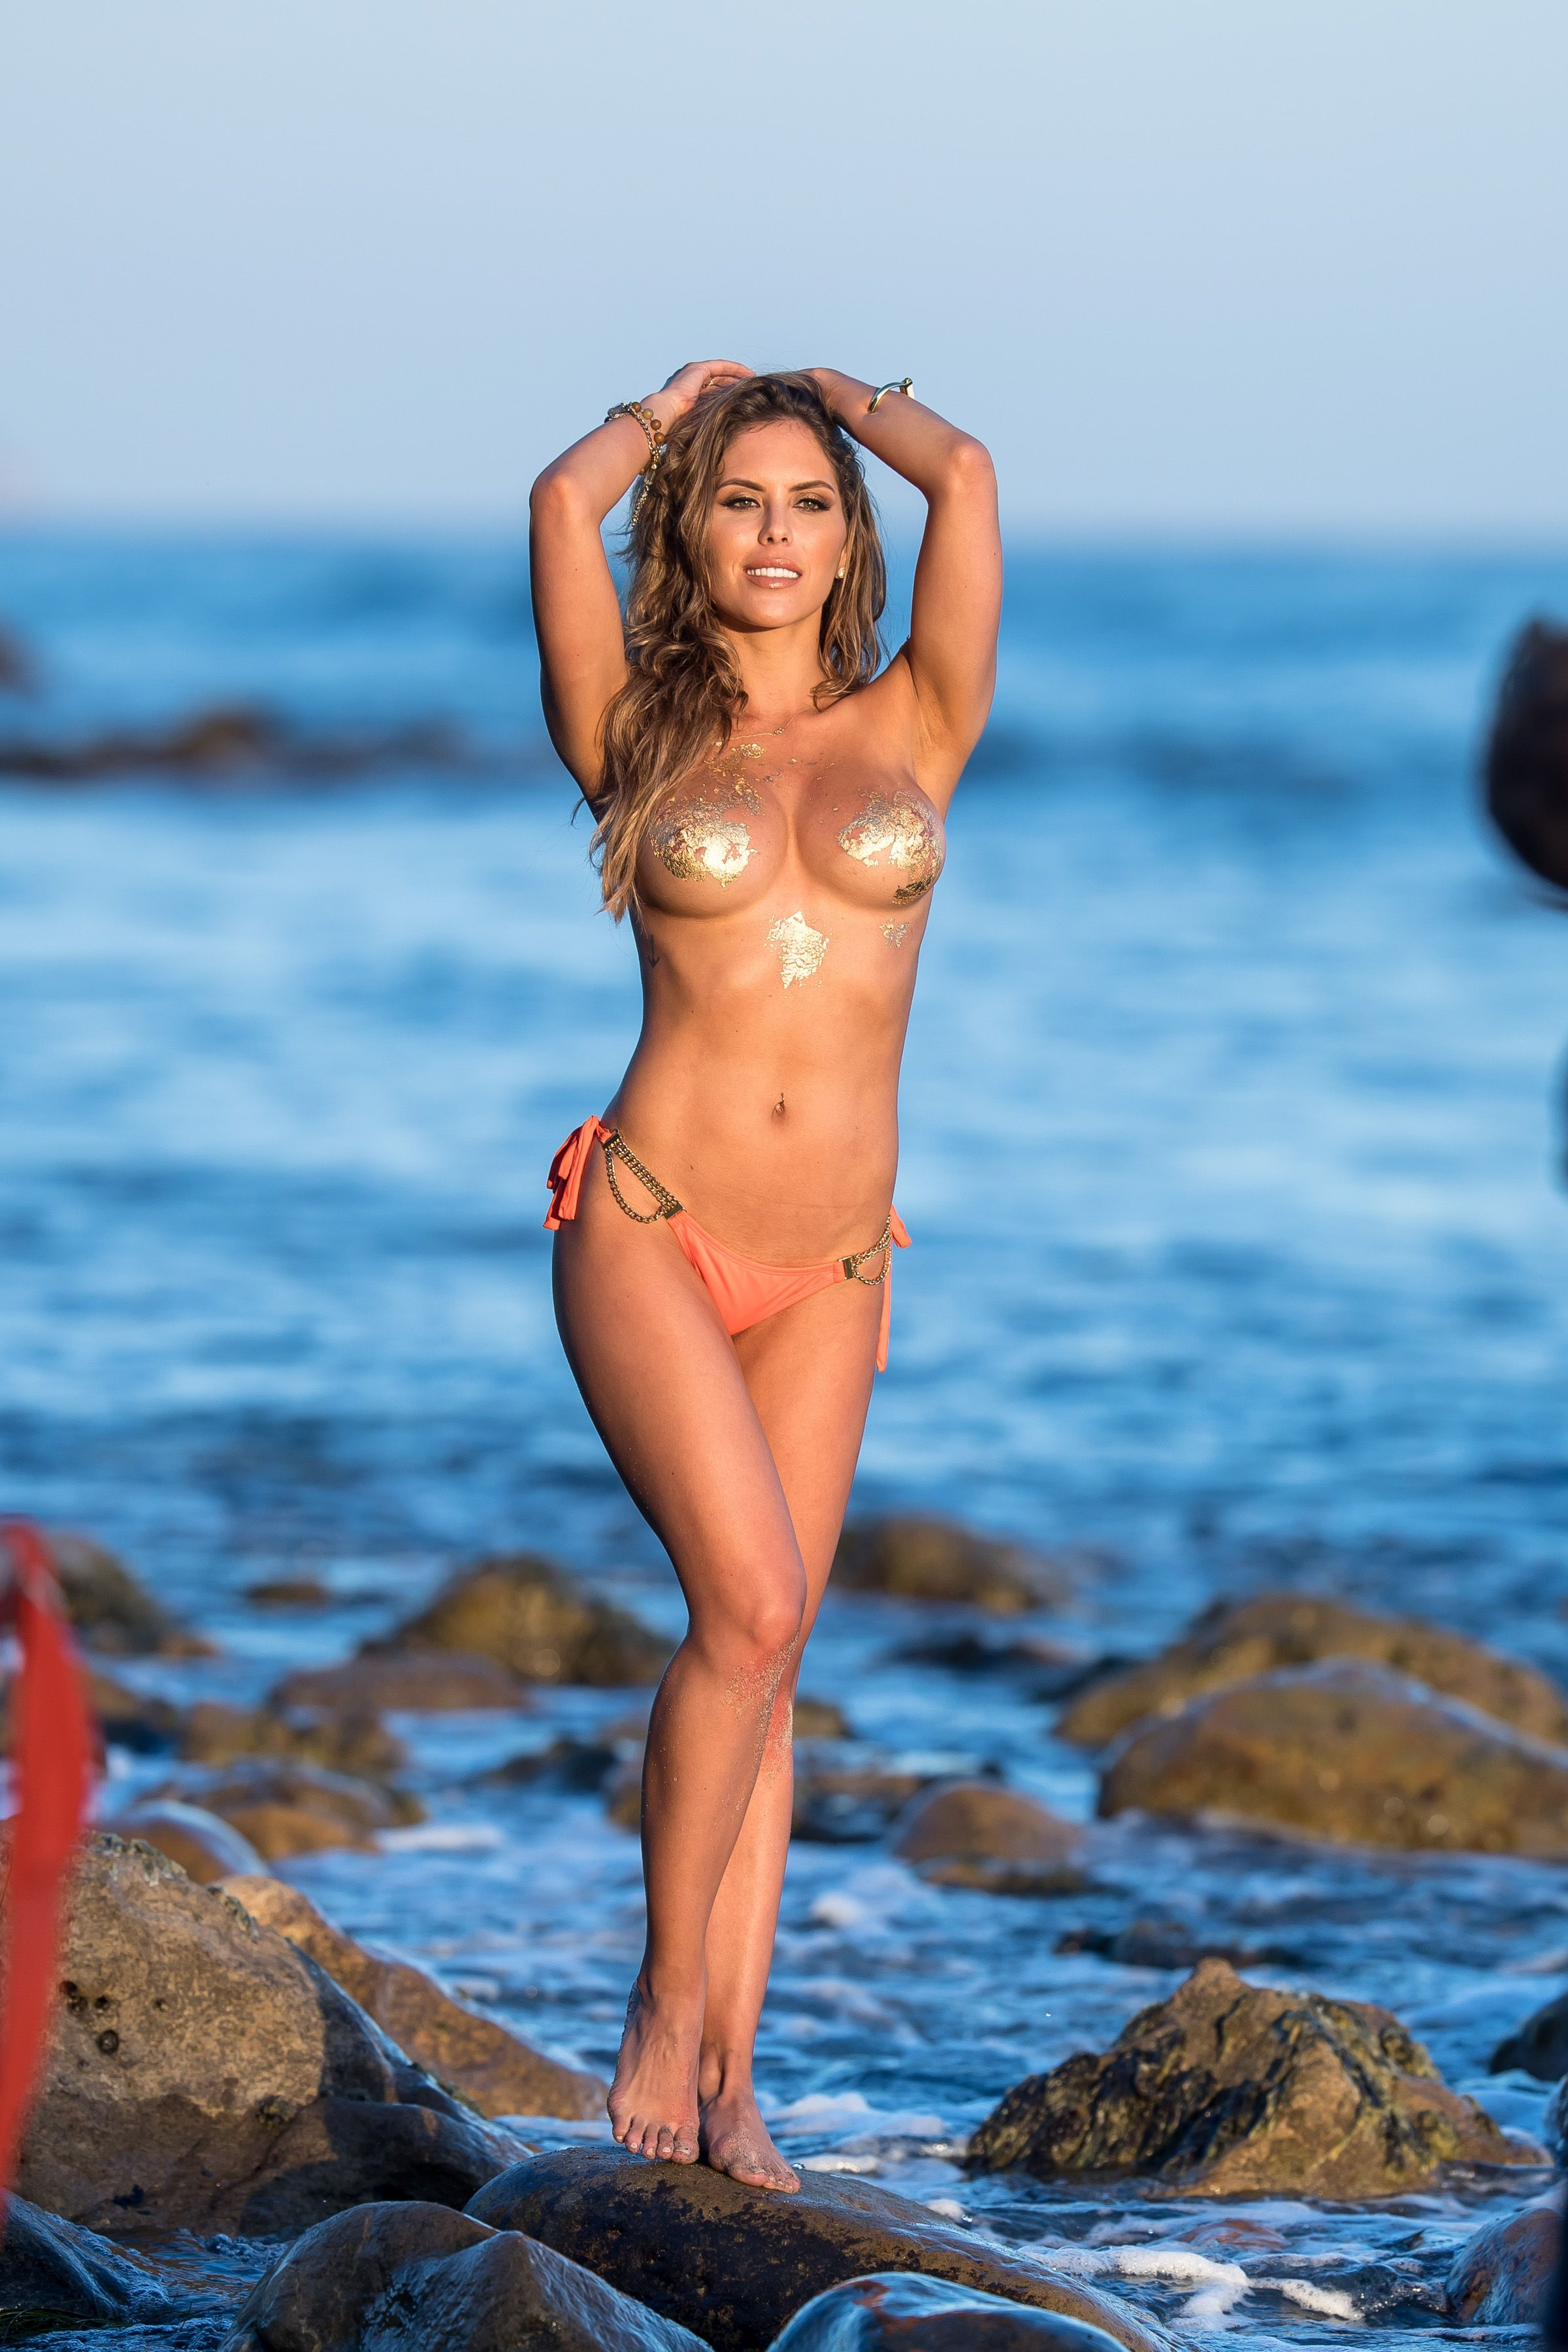 Brittney-Palmer-Sexy-Topless-42-thefappeningblog.com_.jpg